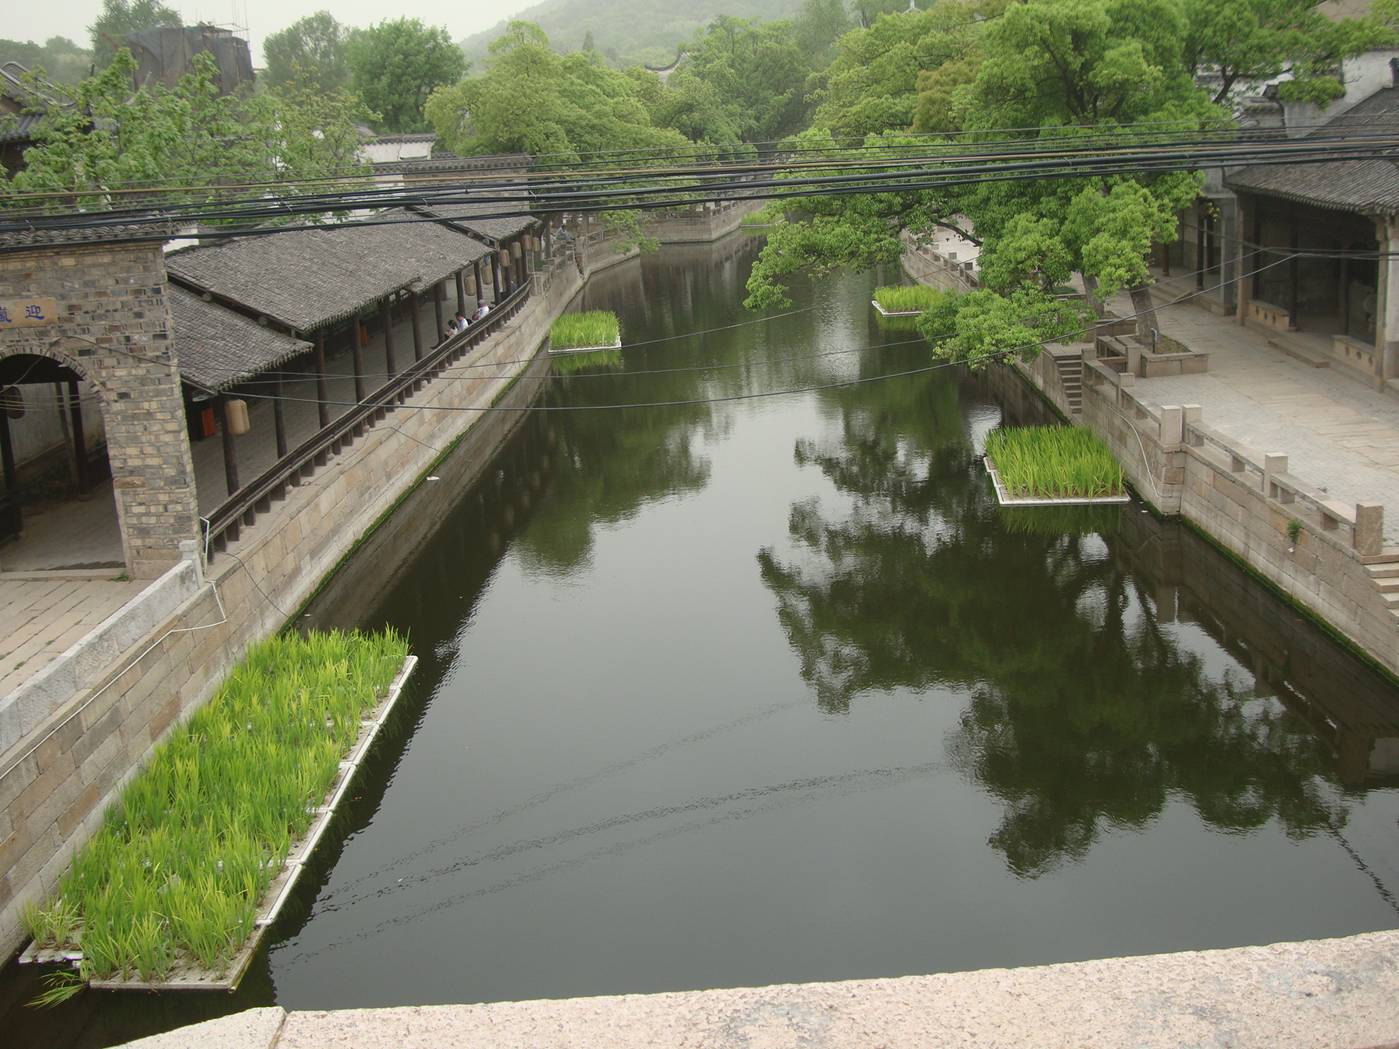 Picture:  Looking West from the bridge and the canal is completed through the renovated ancient city.  Wuxi, China